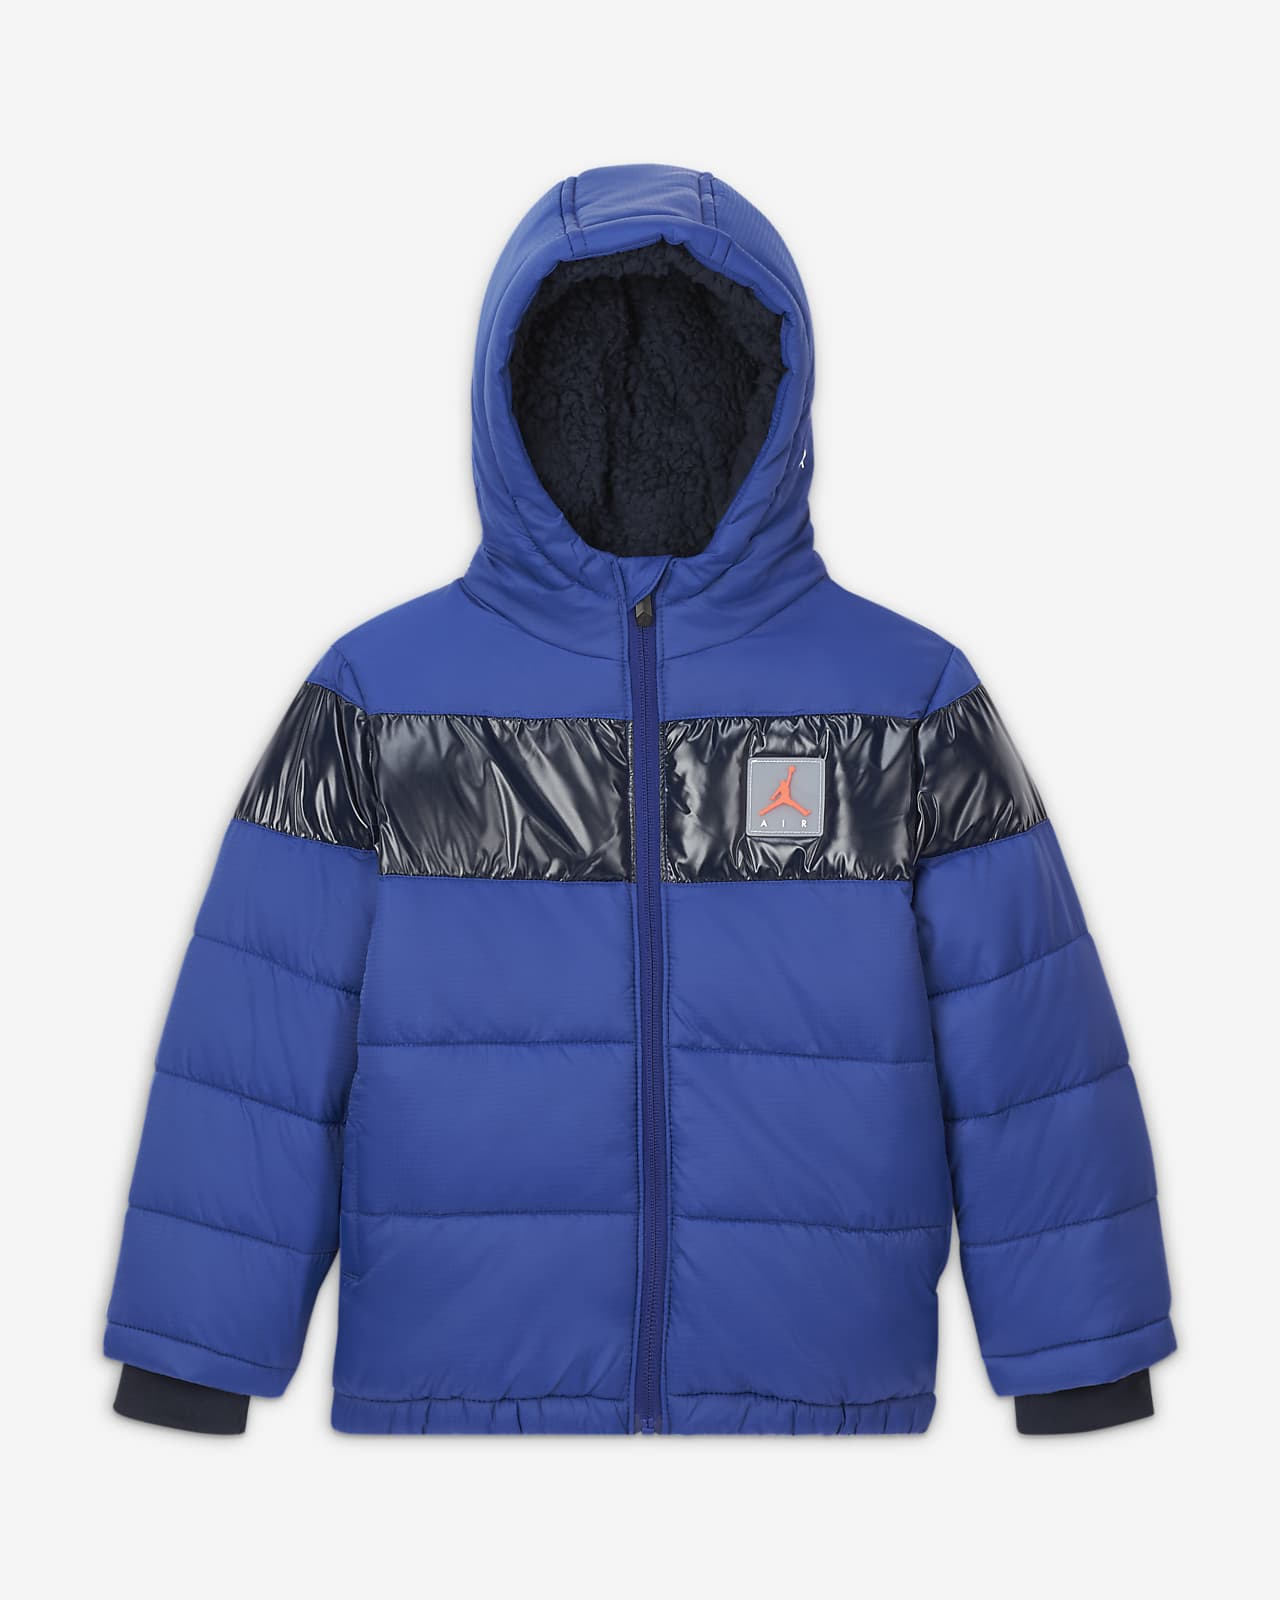 Jordan Little Kids' Puffer Jacket